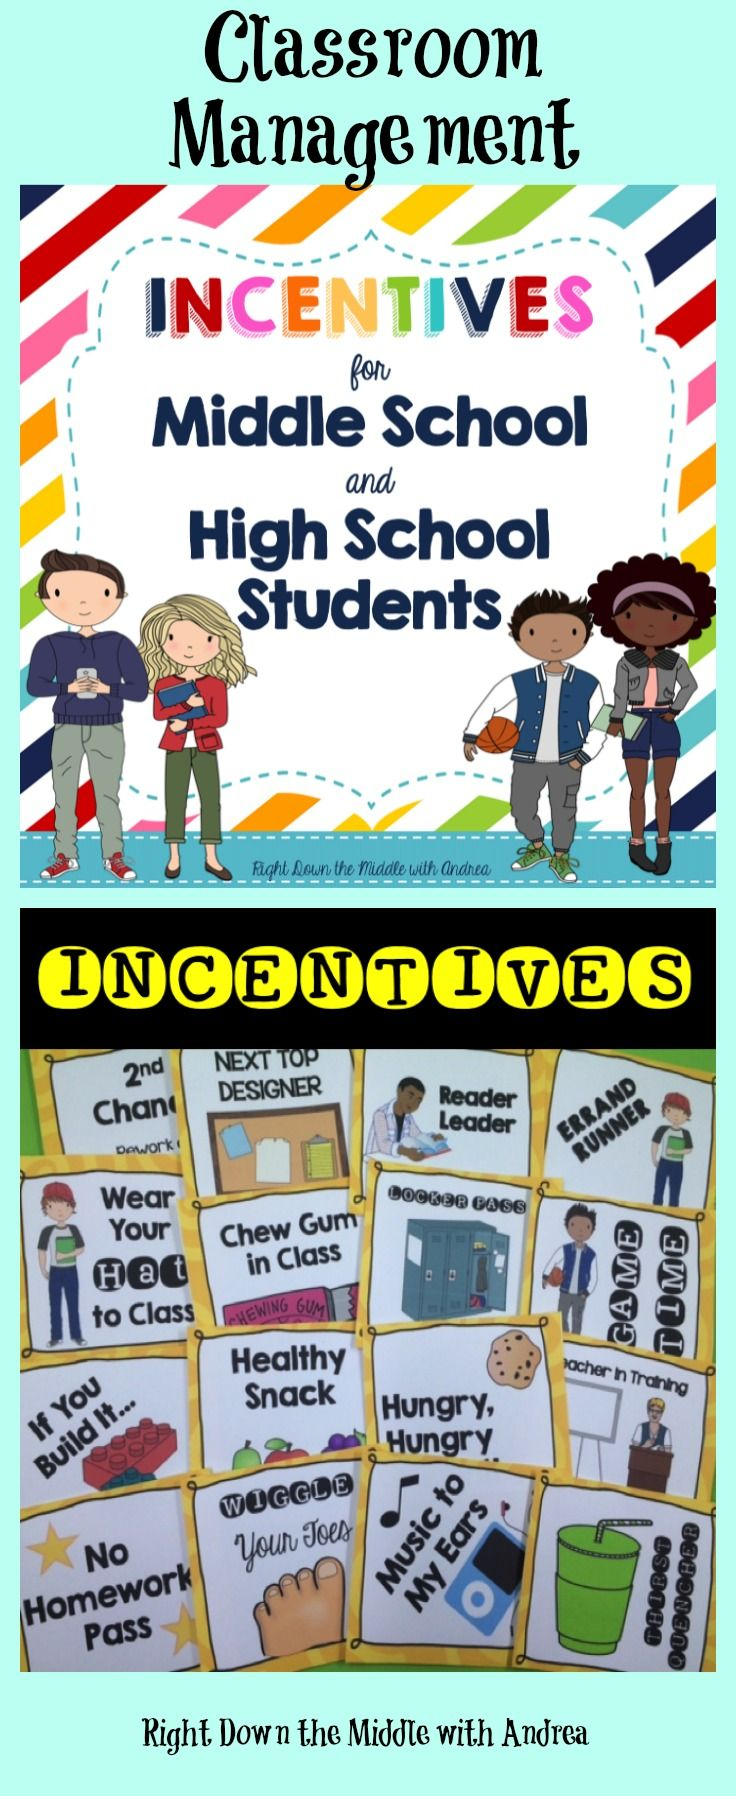 Reward Coupons and Incentives for Middle School and High School Students is an excellent classroom and behavior management system to use in any classroom. Students love the incentives, and it is easy to implement.  Right Down the Middle with Andrea